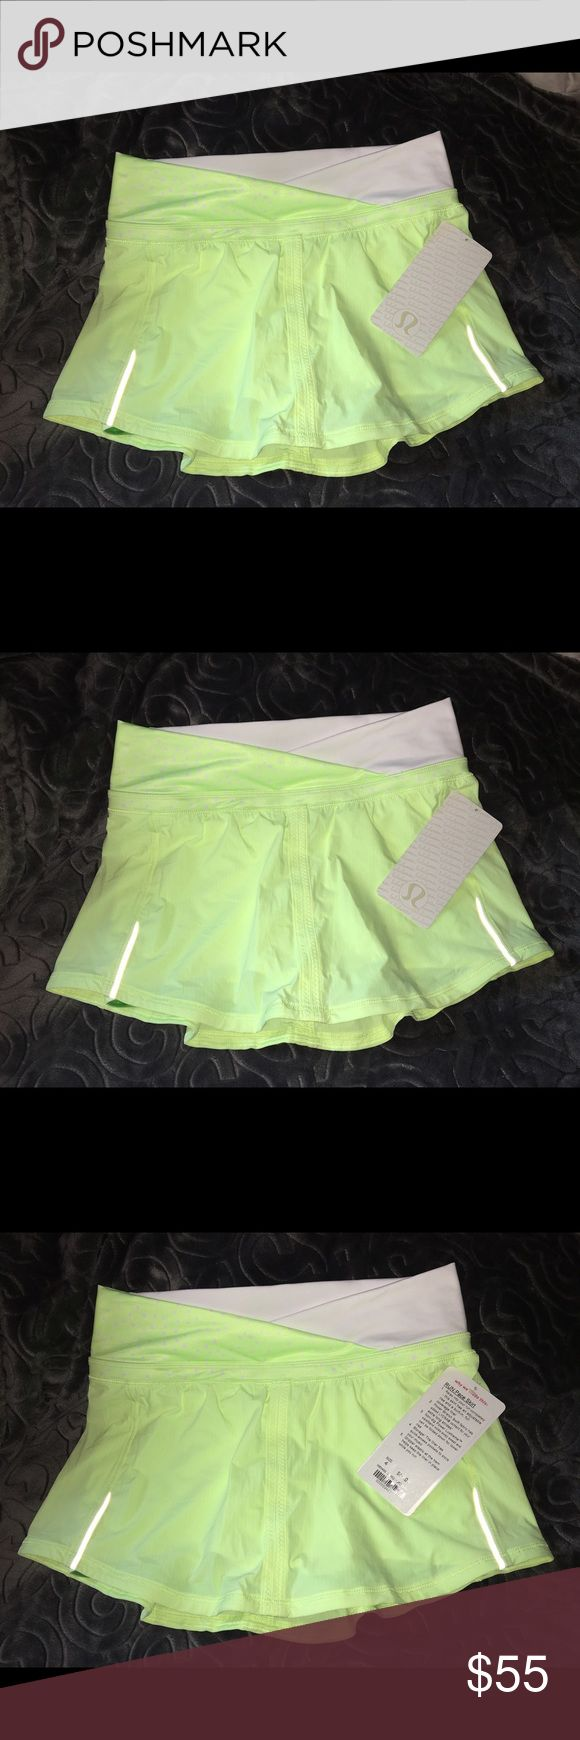 NWT LuluLemon Neon Green Pace Skirt SIZE4 Very nice LuluLemon skirt with shorts underneath that have POCKETS. Will take REASONABLE offers. Great skirt for playing tennis 🎾. lululemon athletica Skirts